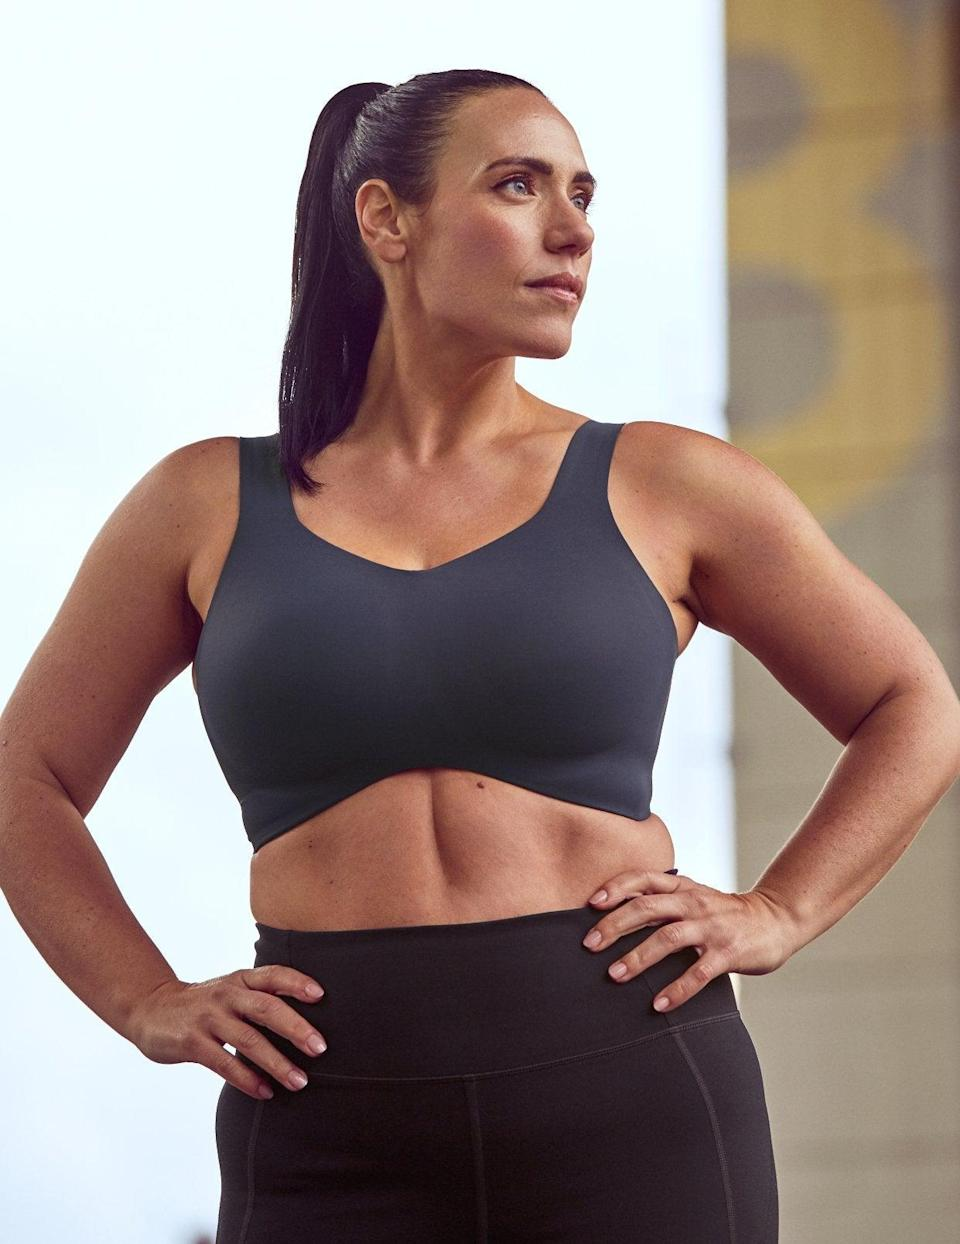 """<h2>Best High-Impact Running Bra <br></h2> <strong>Knix Catalyst Sports Bra<br></strong> <br>I'm a new Knix convert. Though I always used to have to <a href=""""https://www.refinery29.com/en-us/2019/11/8667581/first-nyc-marathon-training-running-gear"""" rel=""""nofollow noopener"""" target=""""_blank"""" data-ylk=""""slk:double-up on sports bras"""" class=""""link rapid-noclick-resp"""">double-up on sports bras</a> to keep by D-cup breasts from bouncing around as I sprint down the pavement, this bra holds up on its own. Its cups are molded to reduce movement, it's ventilated, and the ladder-style straps are easily adjusted. <br><br><strong>Knix</strong> Catalyst Sports Bra, $, available at <a href=""""https://go.skimresources.com/?id=30283X879131&url=https%3A%2F%2Fknix.com%2Fproducts%2Fcatalyst-sports-bra"""" rel=""""nofollow noopener"""" target=""""_blank"""" data-ylk=""""slk:Knix"""" class=""""link rapid-noclick-resp"""">Knix</a><br>"""